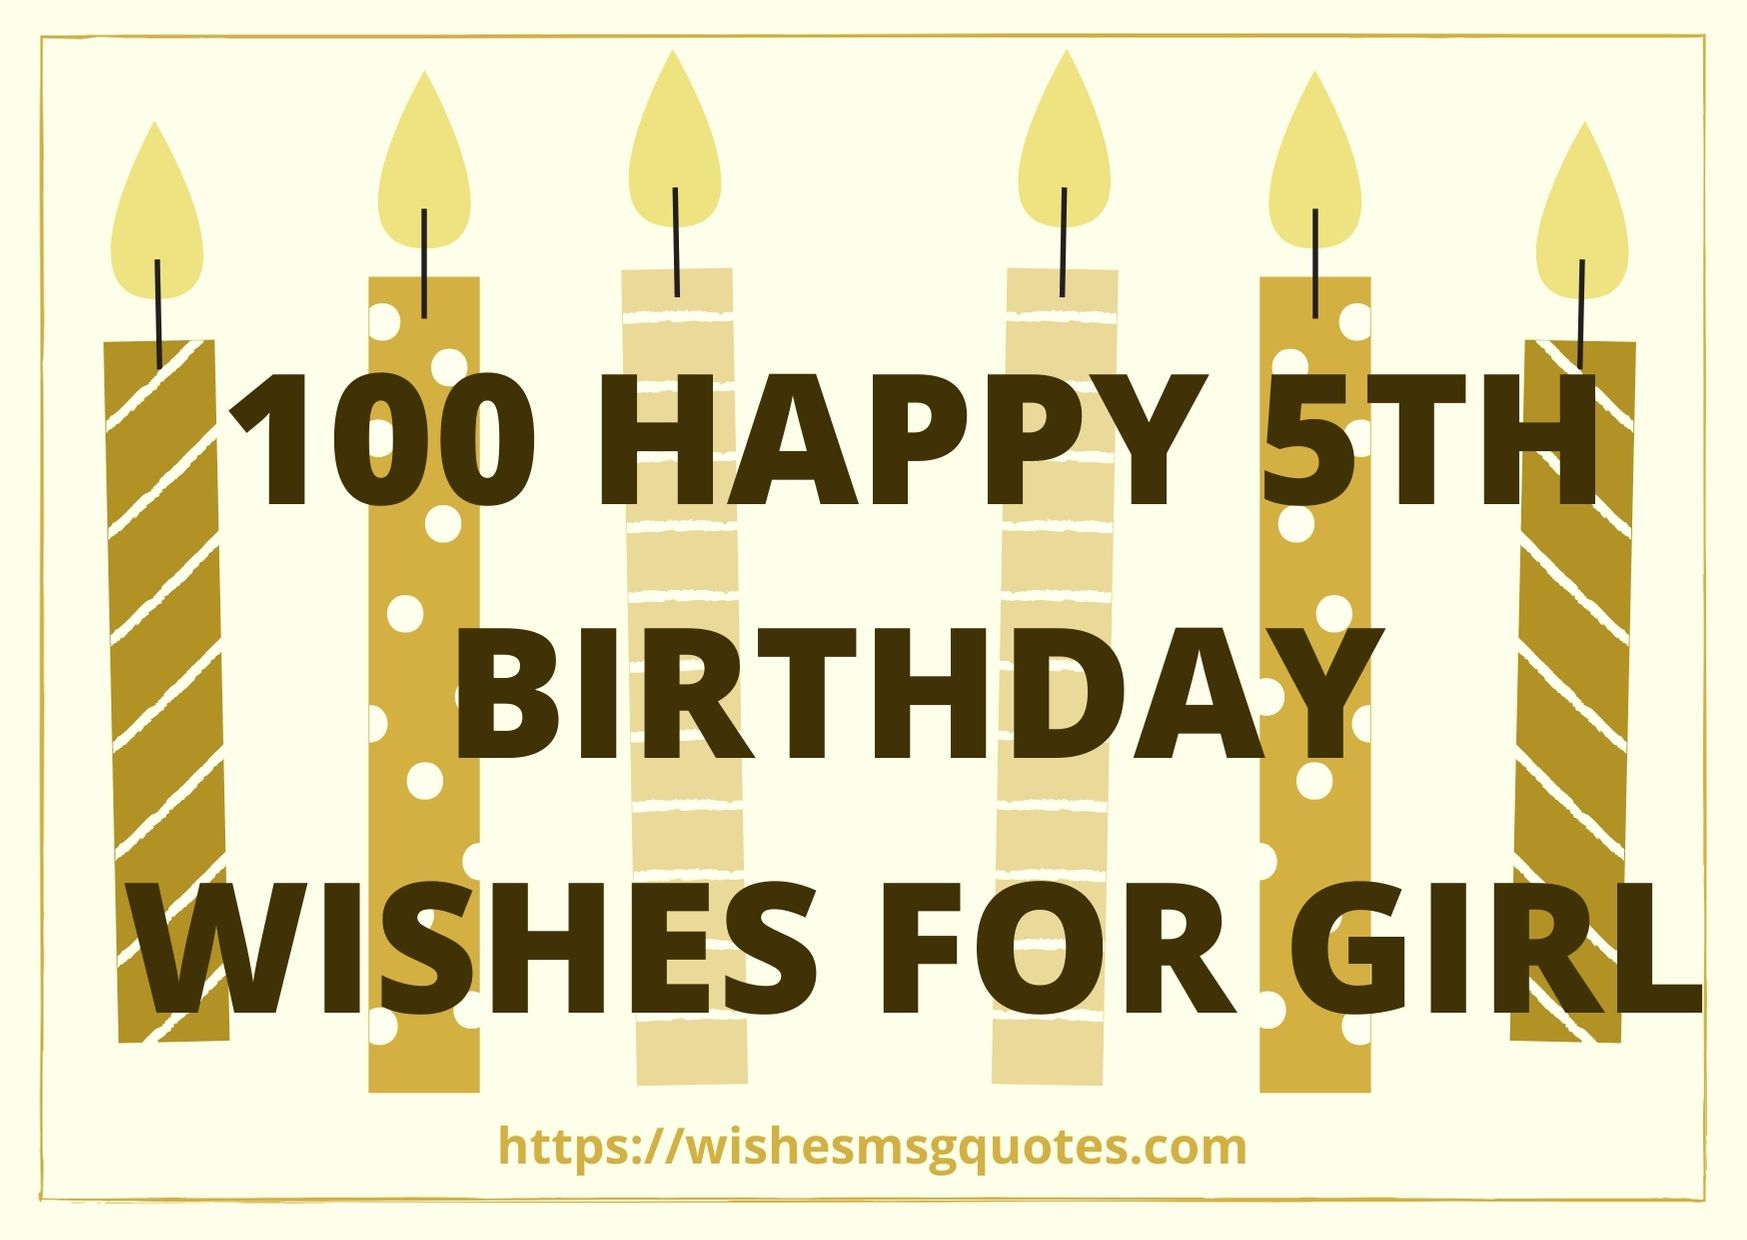 100 Happy 5th Birthday Wishes For Girl